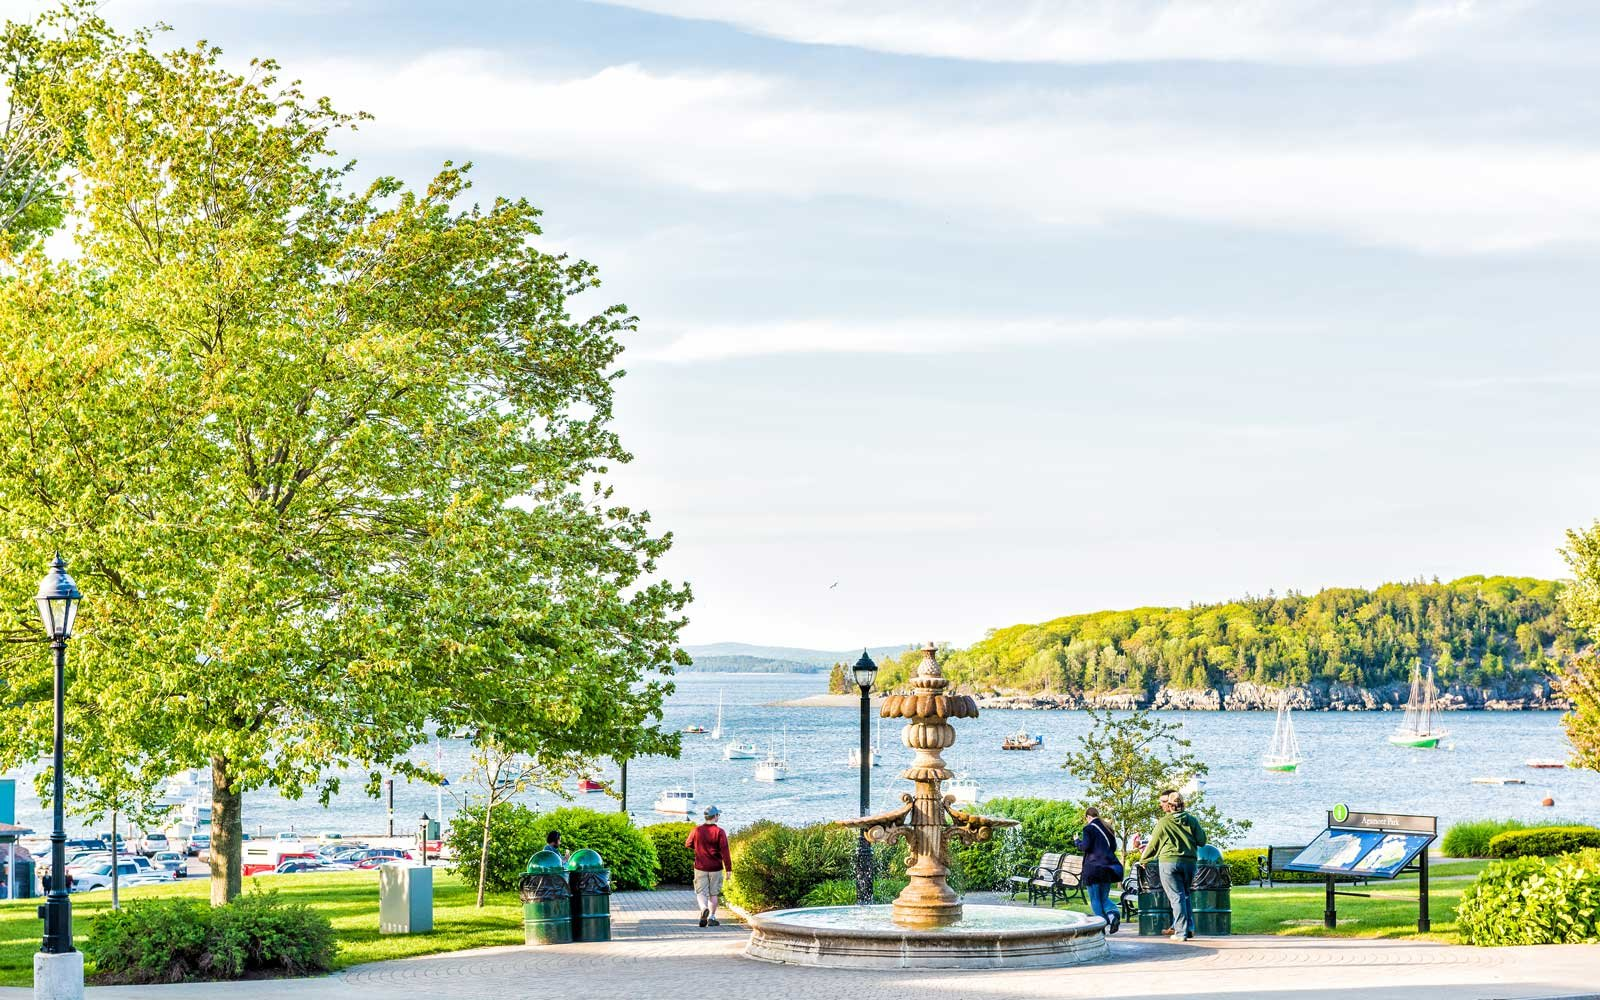 3. Bar Harbor, Maine